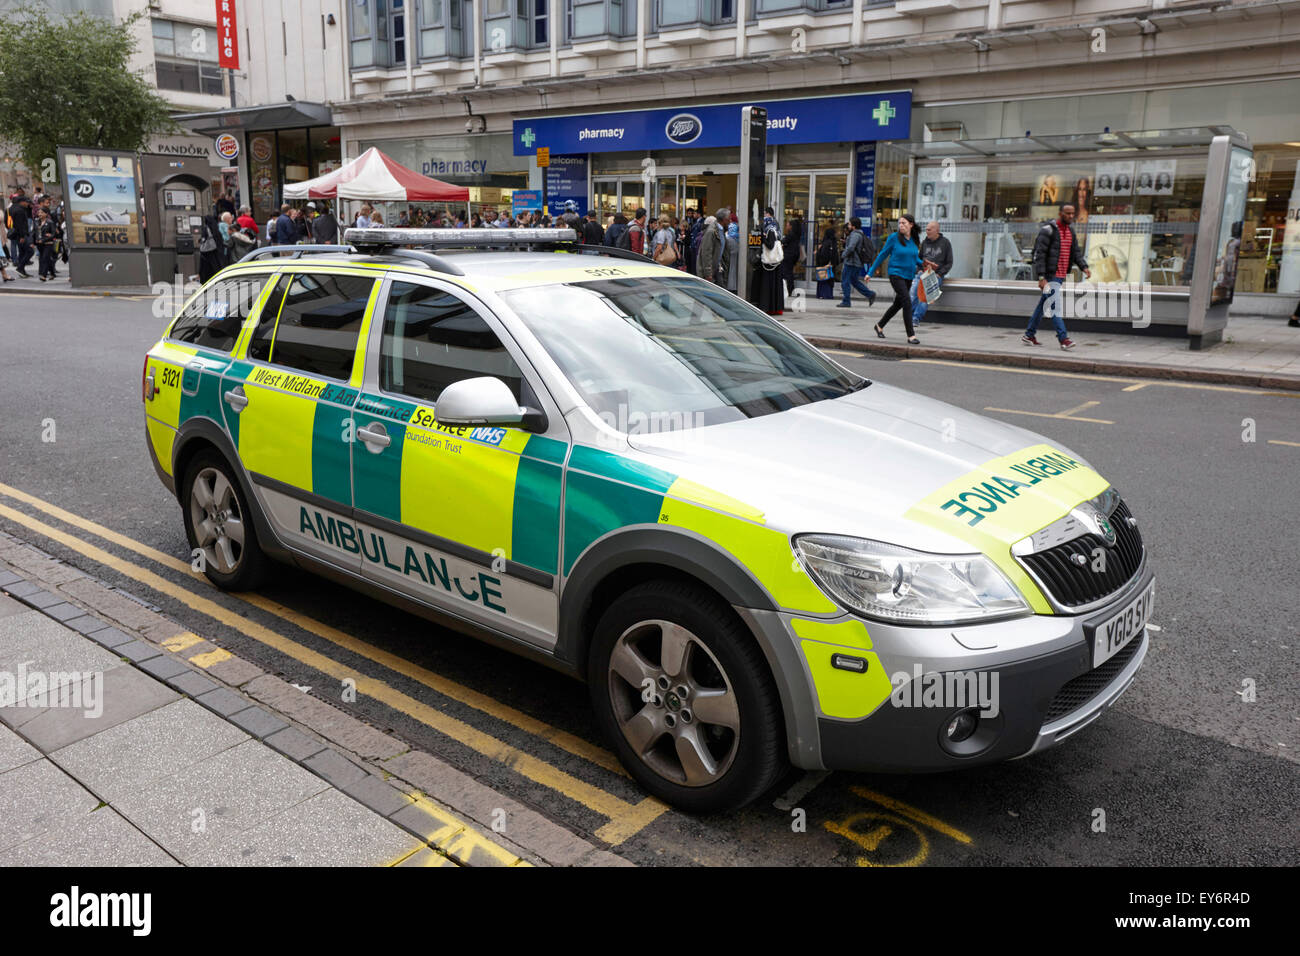 west midlands ambulance service paramedic fast response vehicle in city centre Birmingham UK - Stock Image